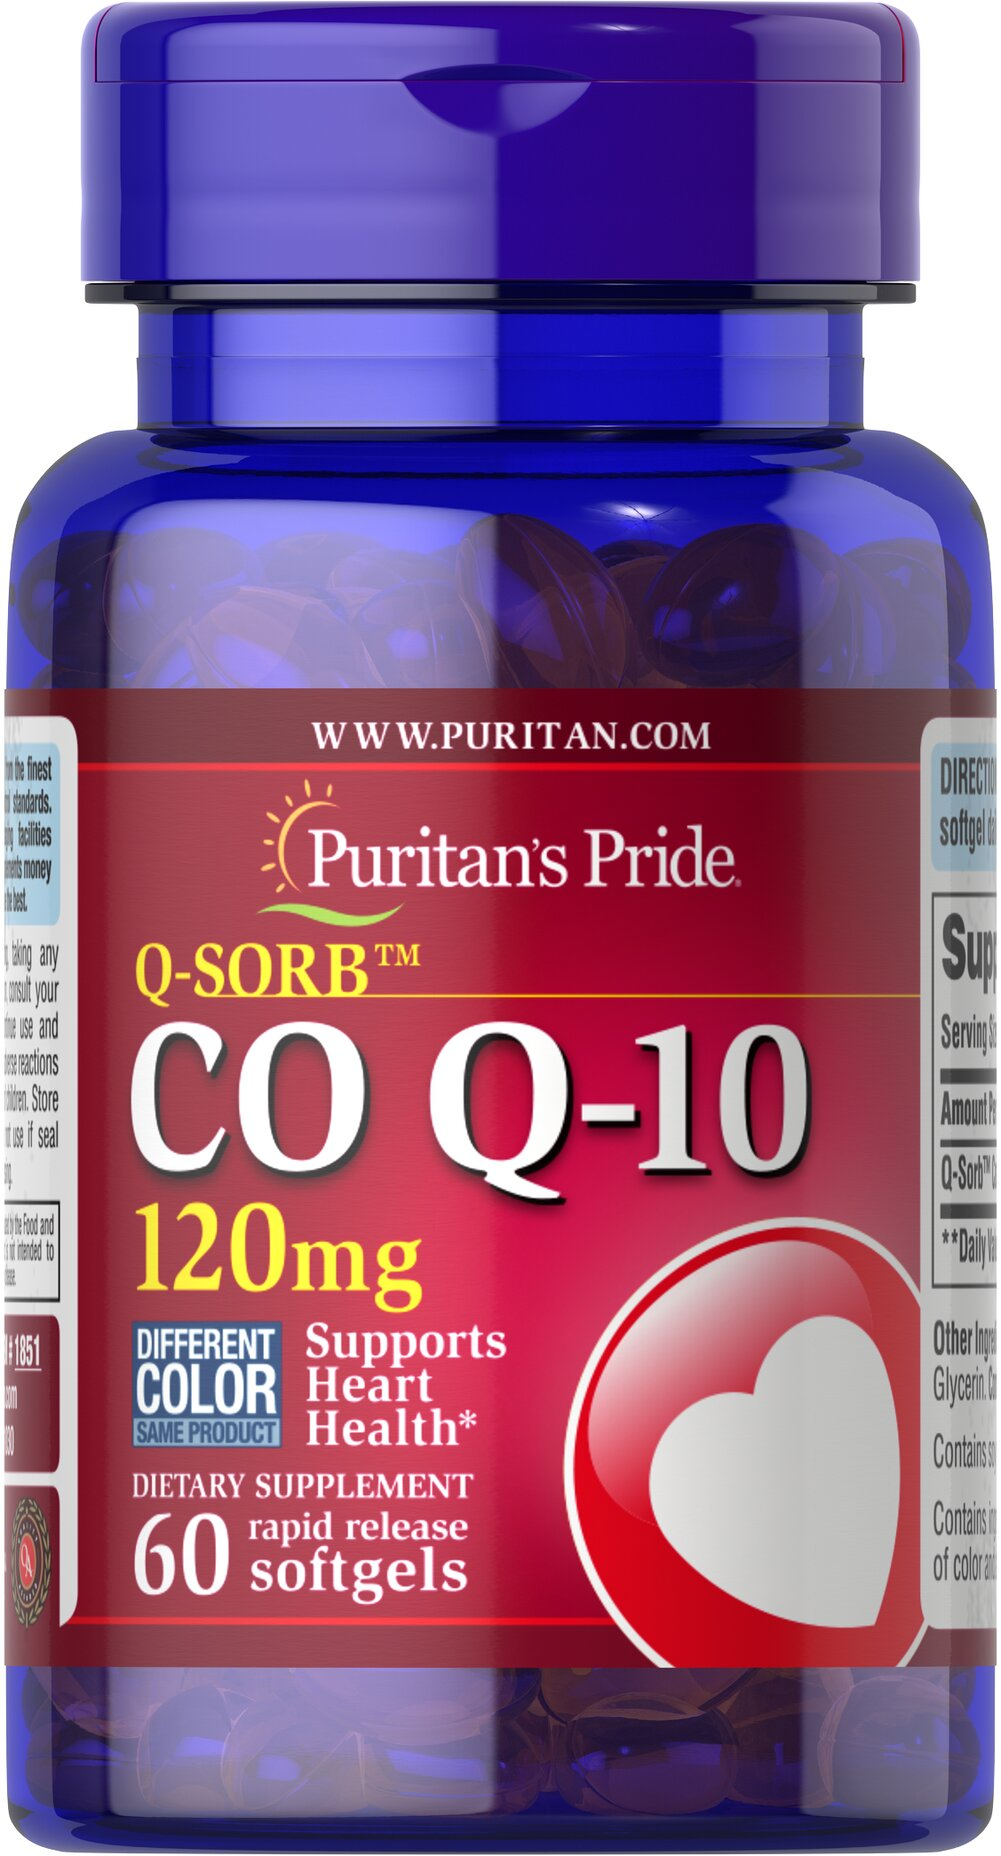 Q-SORB™ Co Q-10 120 mg <p></p>Made with a natural, highly bioavailable form of Co Q 10 — Q-Sorb.™ Important for Statin medication users++ — taking Q-Sorb™ Co Q 10 can help replenish what Statin drugs can deplete. Coenzyme Q-10 provides powerful antioxidant support.** Good oral health is linked to cardiovascular health; Coenzyme Q10 supports both!** Hermetically sealed in easy to swallow rapid-release softgels for superior absorption. <br /><br />++Note: Statin medications